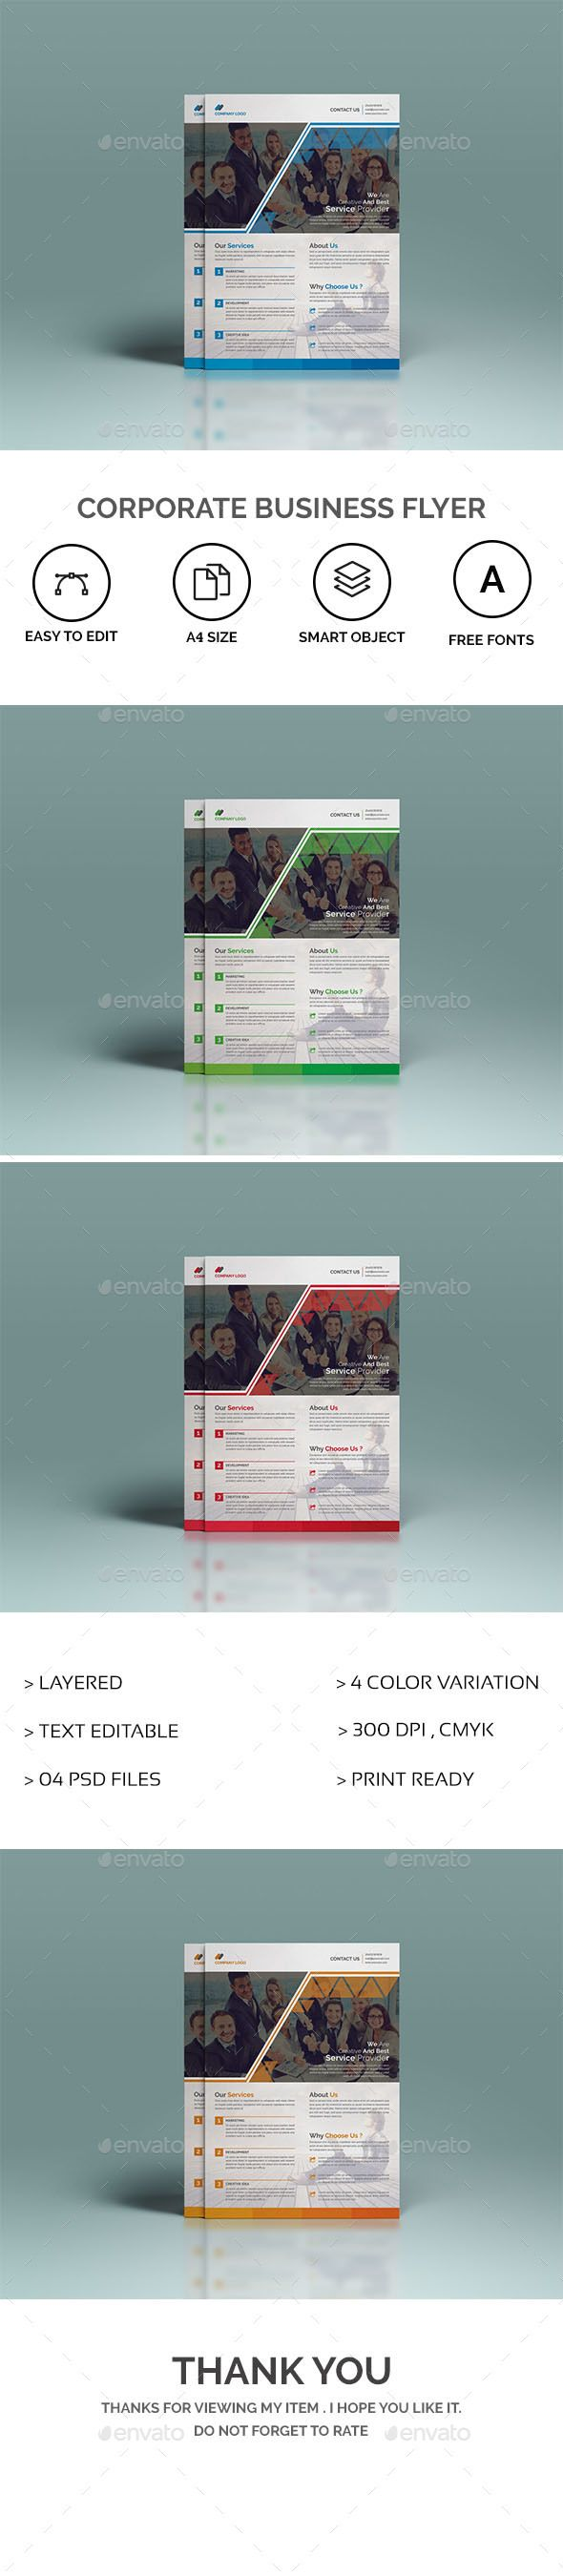 #simple #modern #creative #Corporate #Business #Flyer #template - #company #marketing #agency #service #Flyers #design. download here; https://graphicriver.net/item/corporate-business-flyer/20220018?ref=yinkira